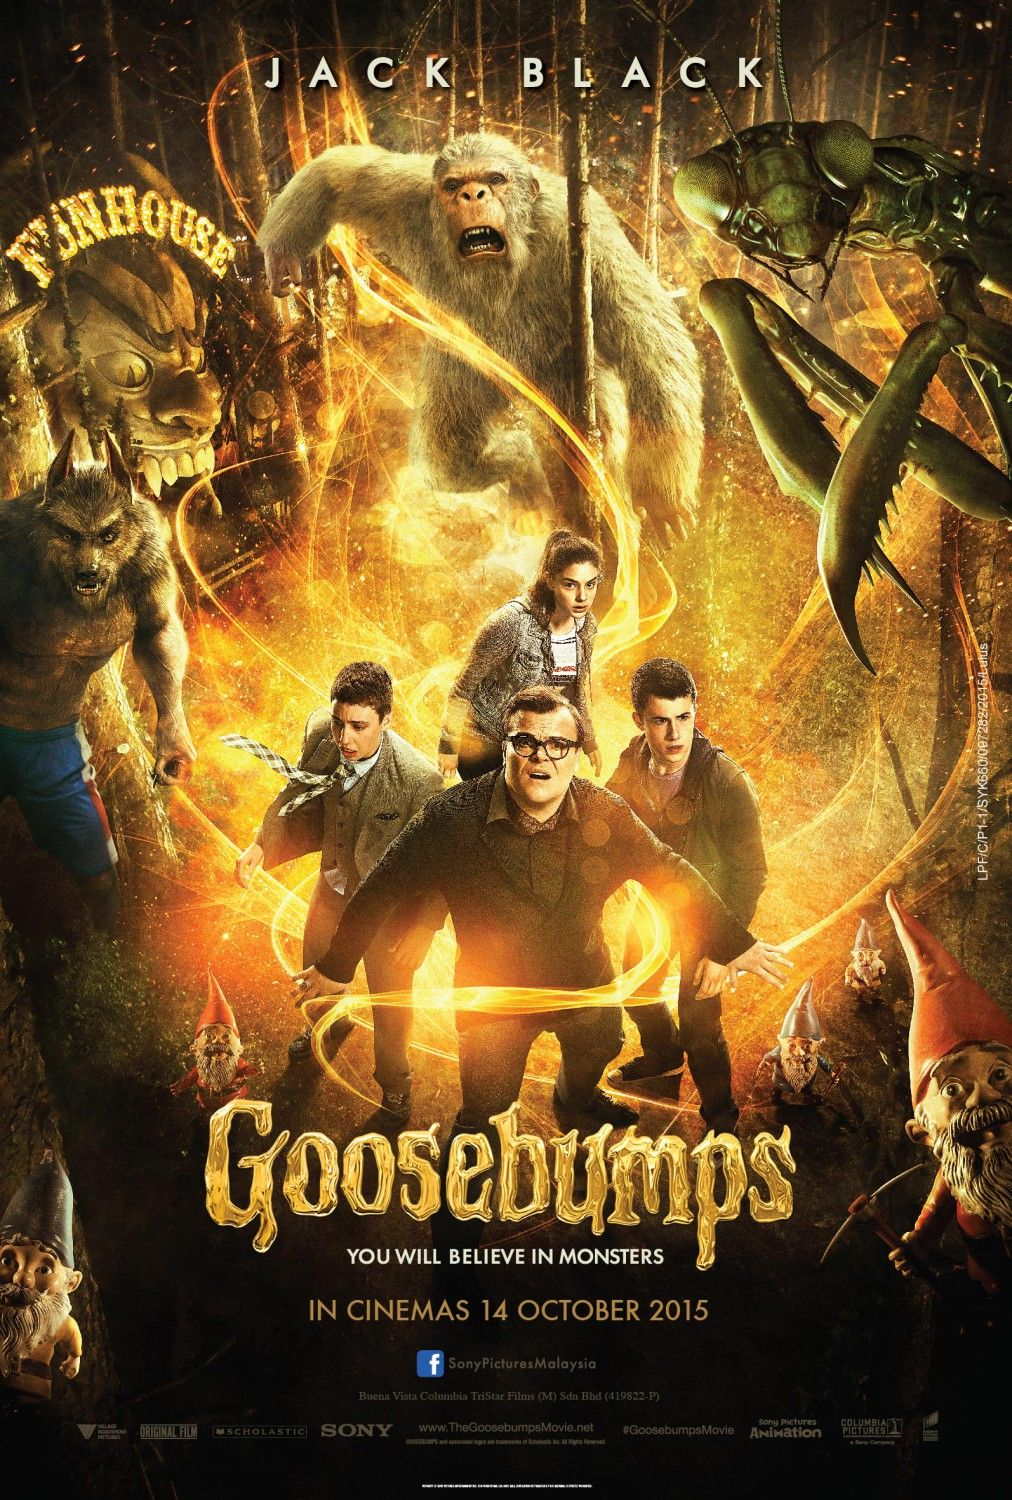 Return to the main poster page for Goosebumps